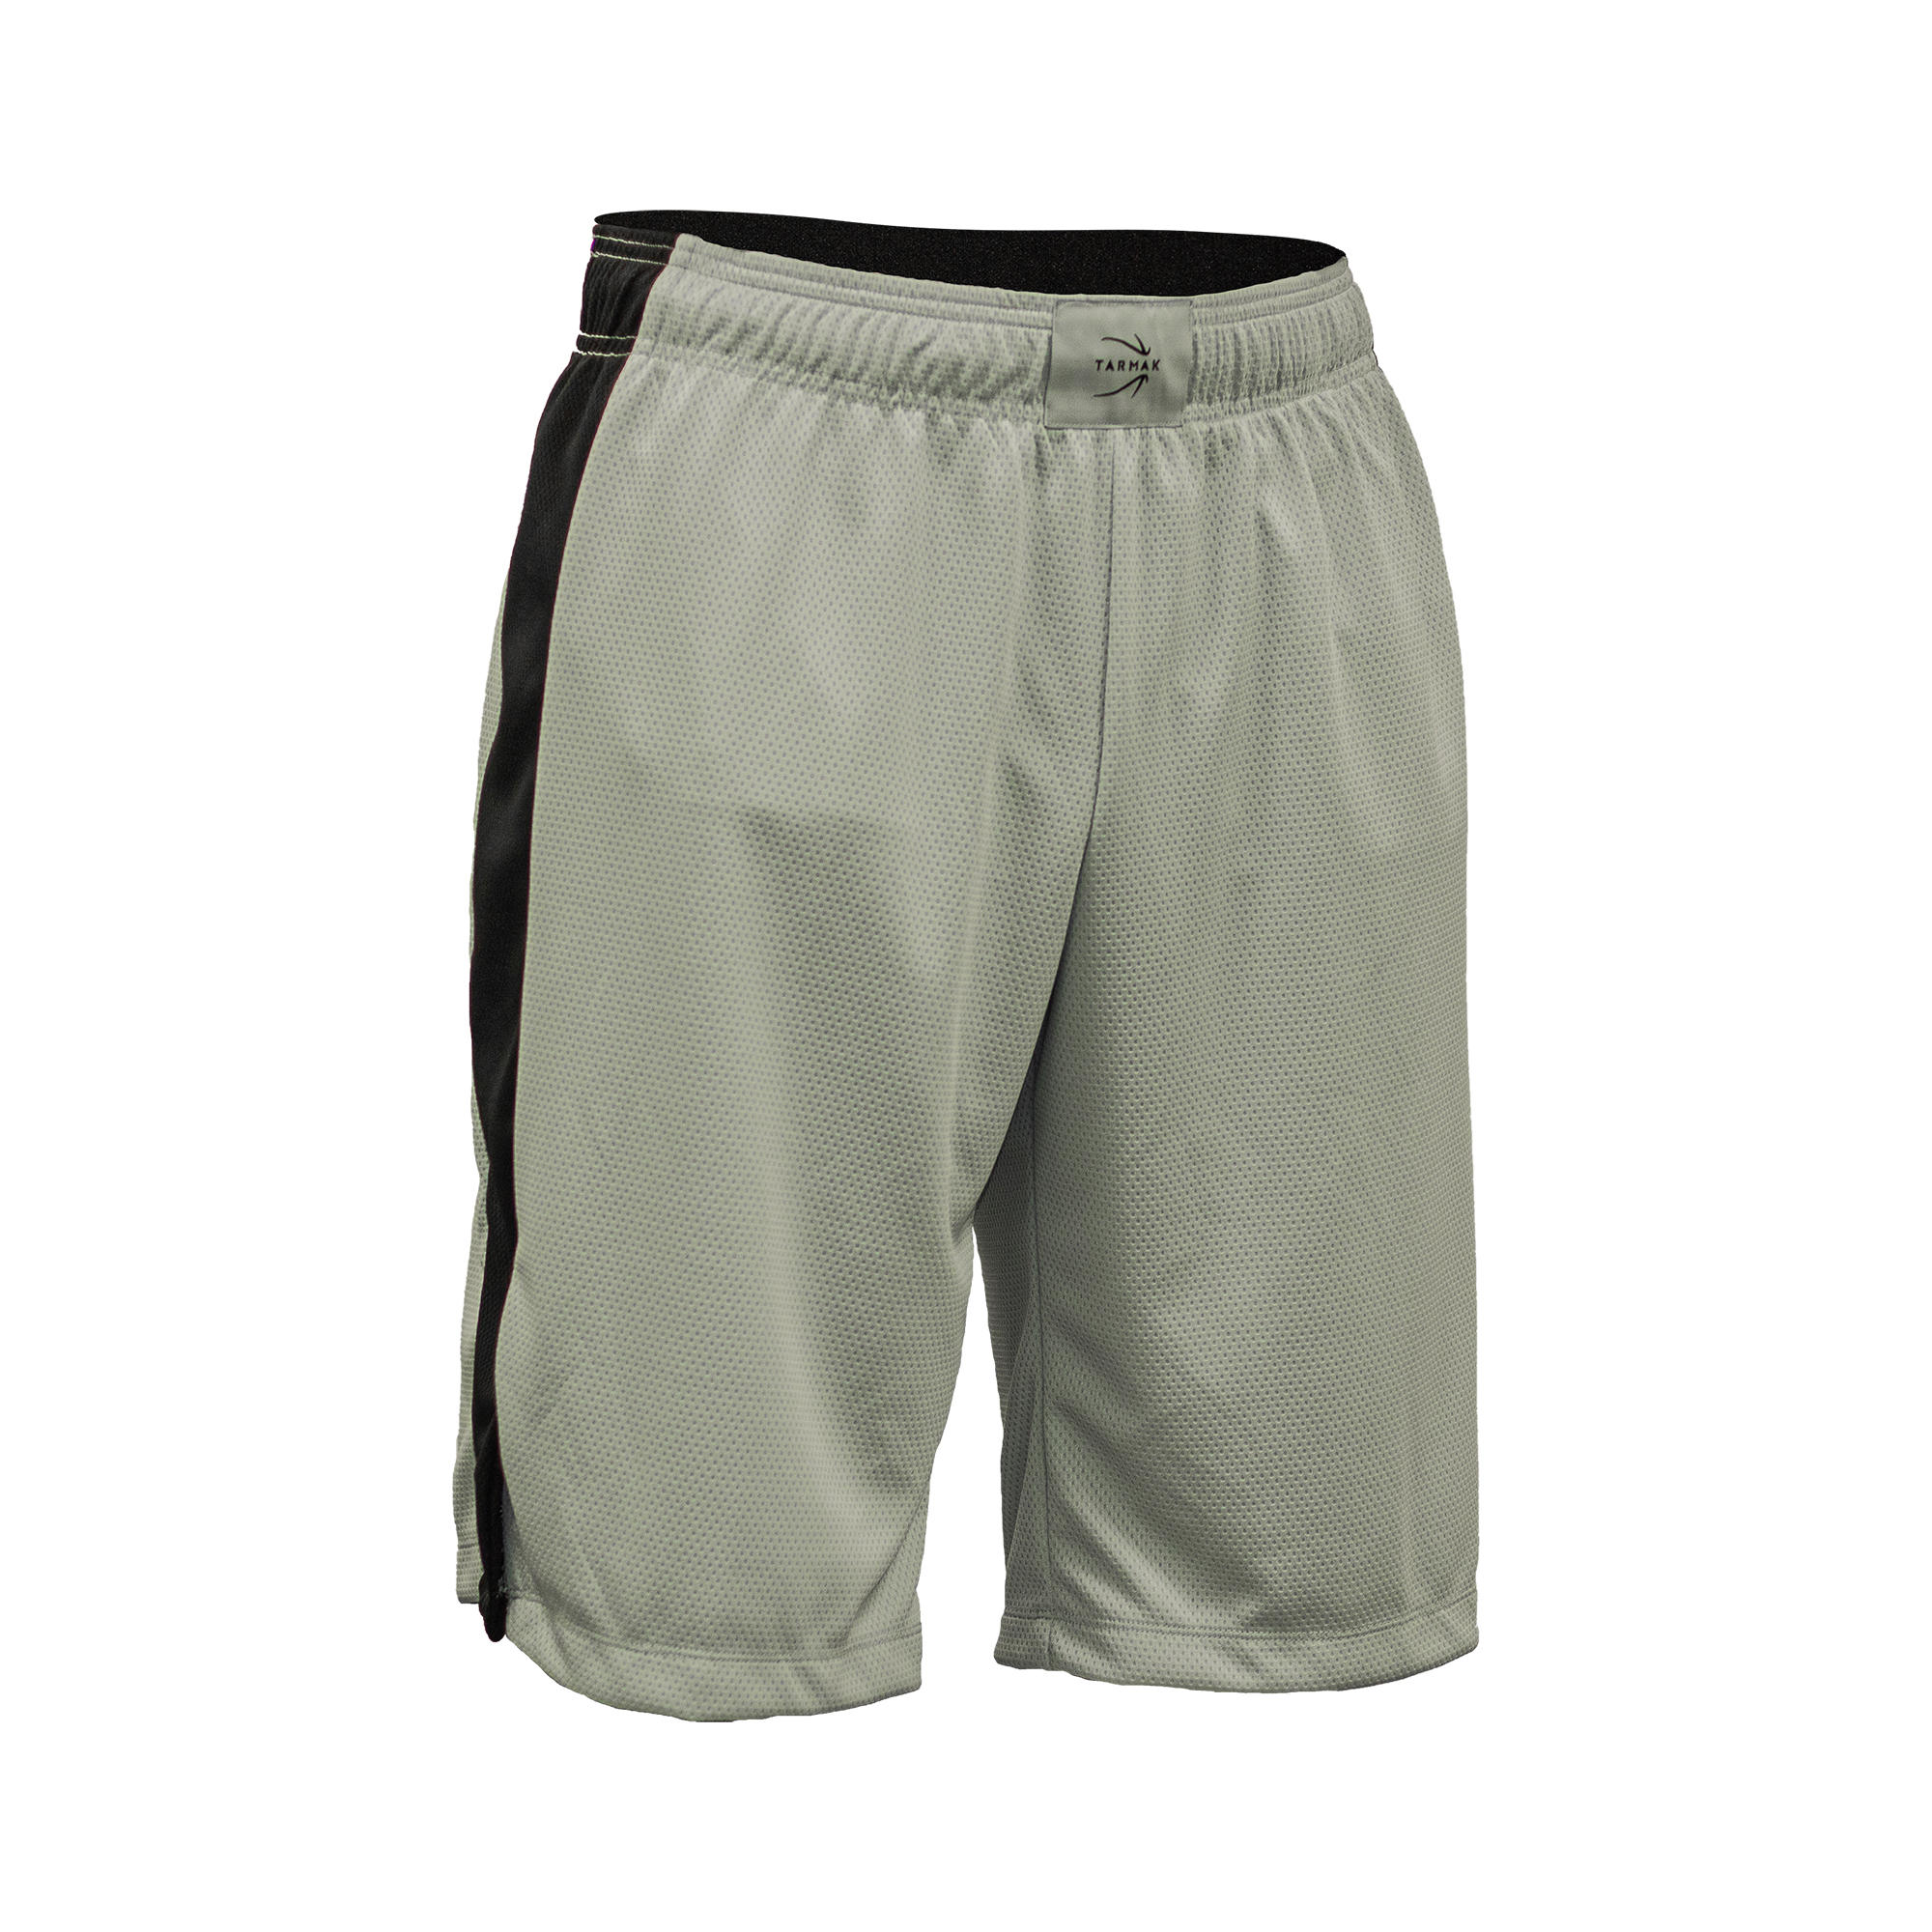 SH500 Basketball Shorts - Grey/Black